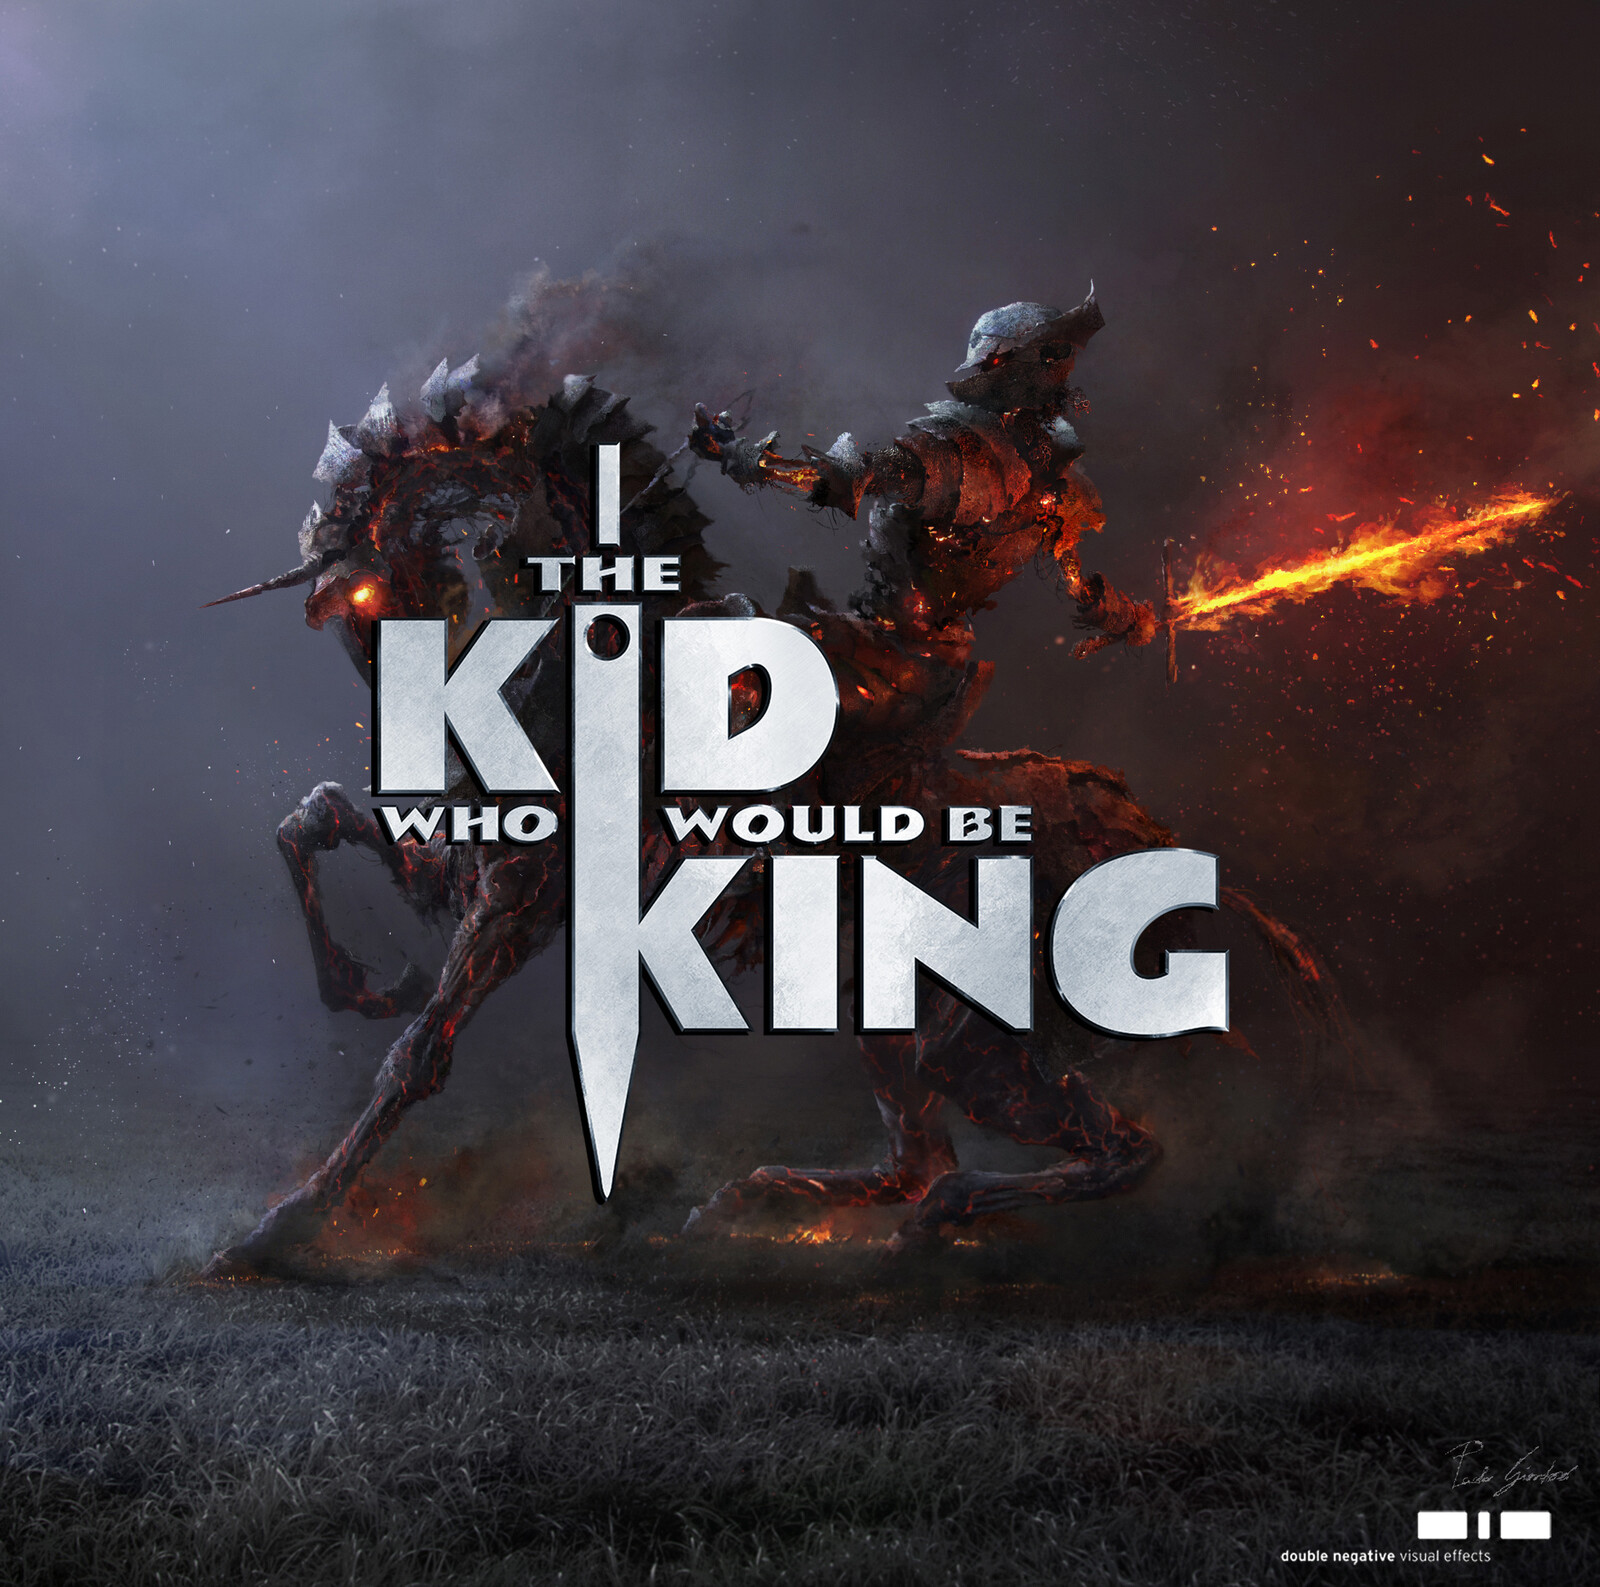 """The Kid who would be King"", Bog Knight"